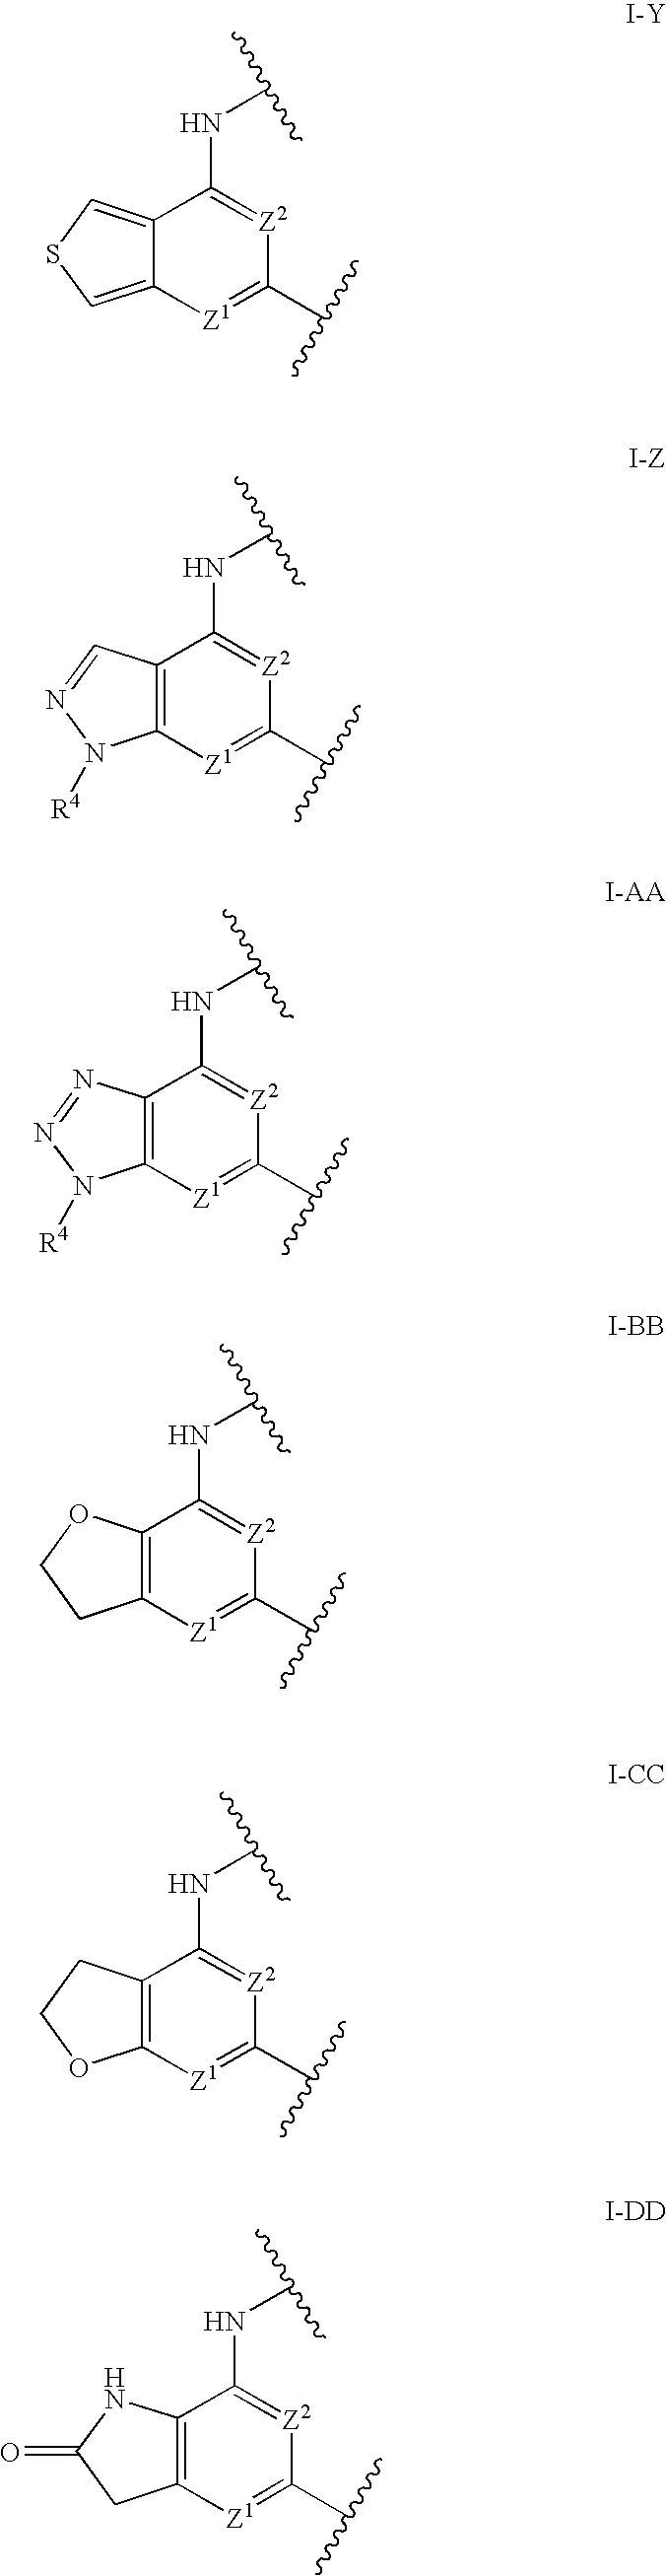 Us7098330b2 Pyrazolylamine Substituted Quinazoline Compounds Wiring Diagram Bolens 1476 Figure Us07098330 20060829 C00010